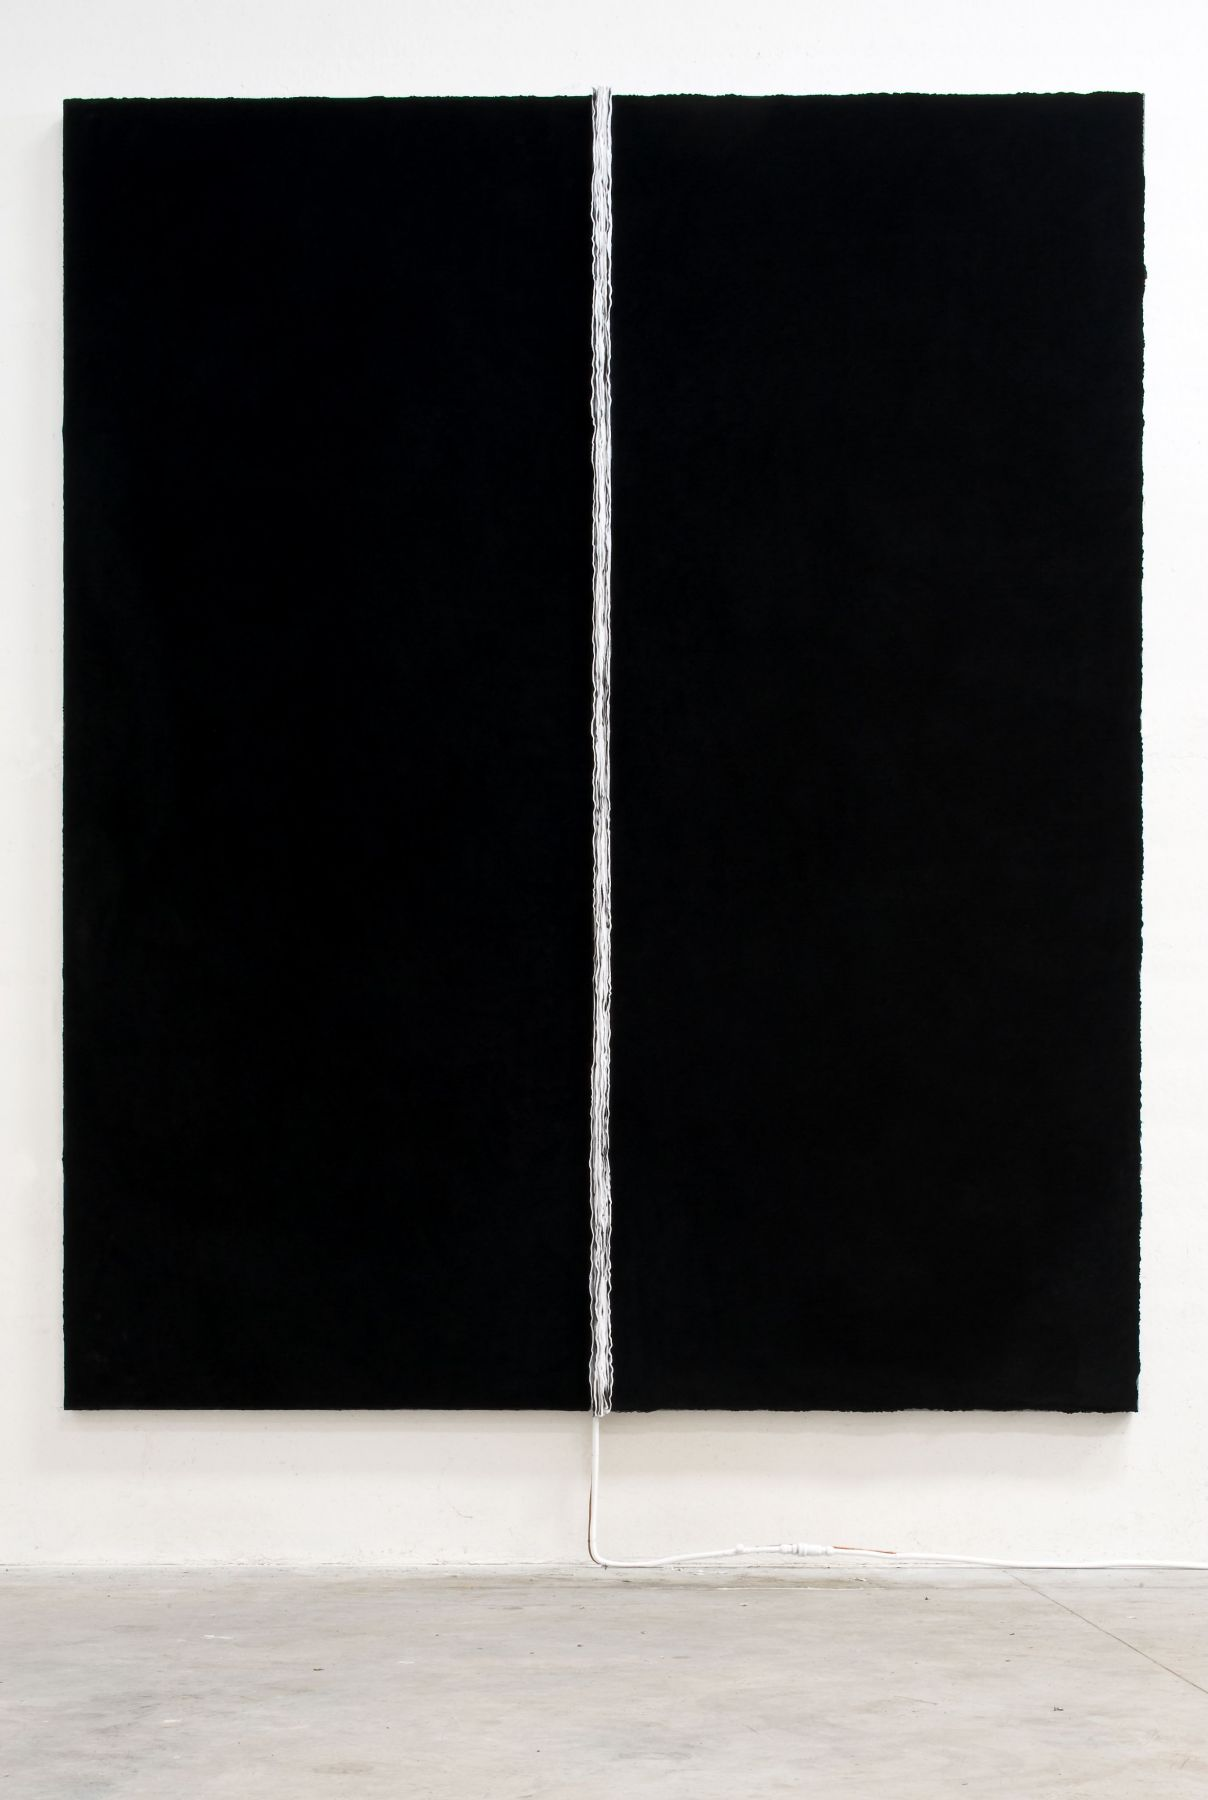 black painting with white stripe by pier paolo calzolari